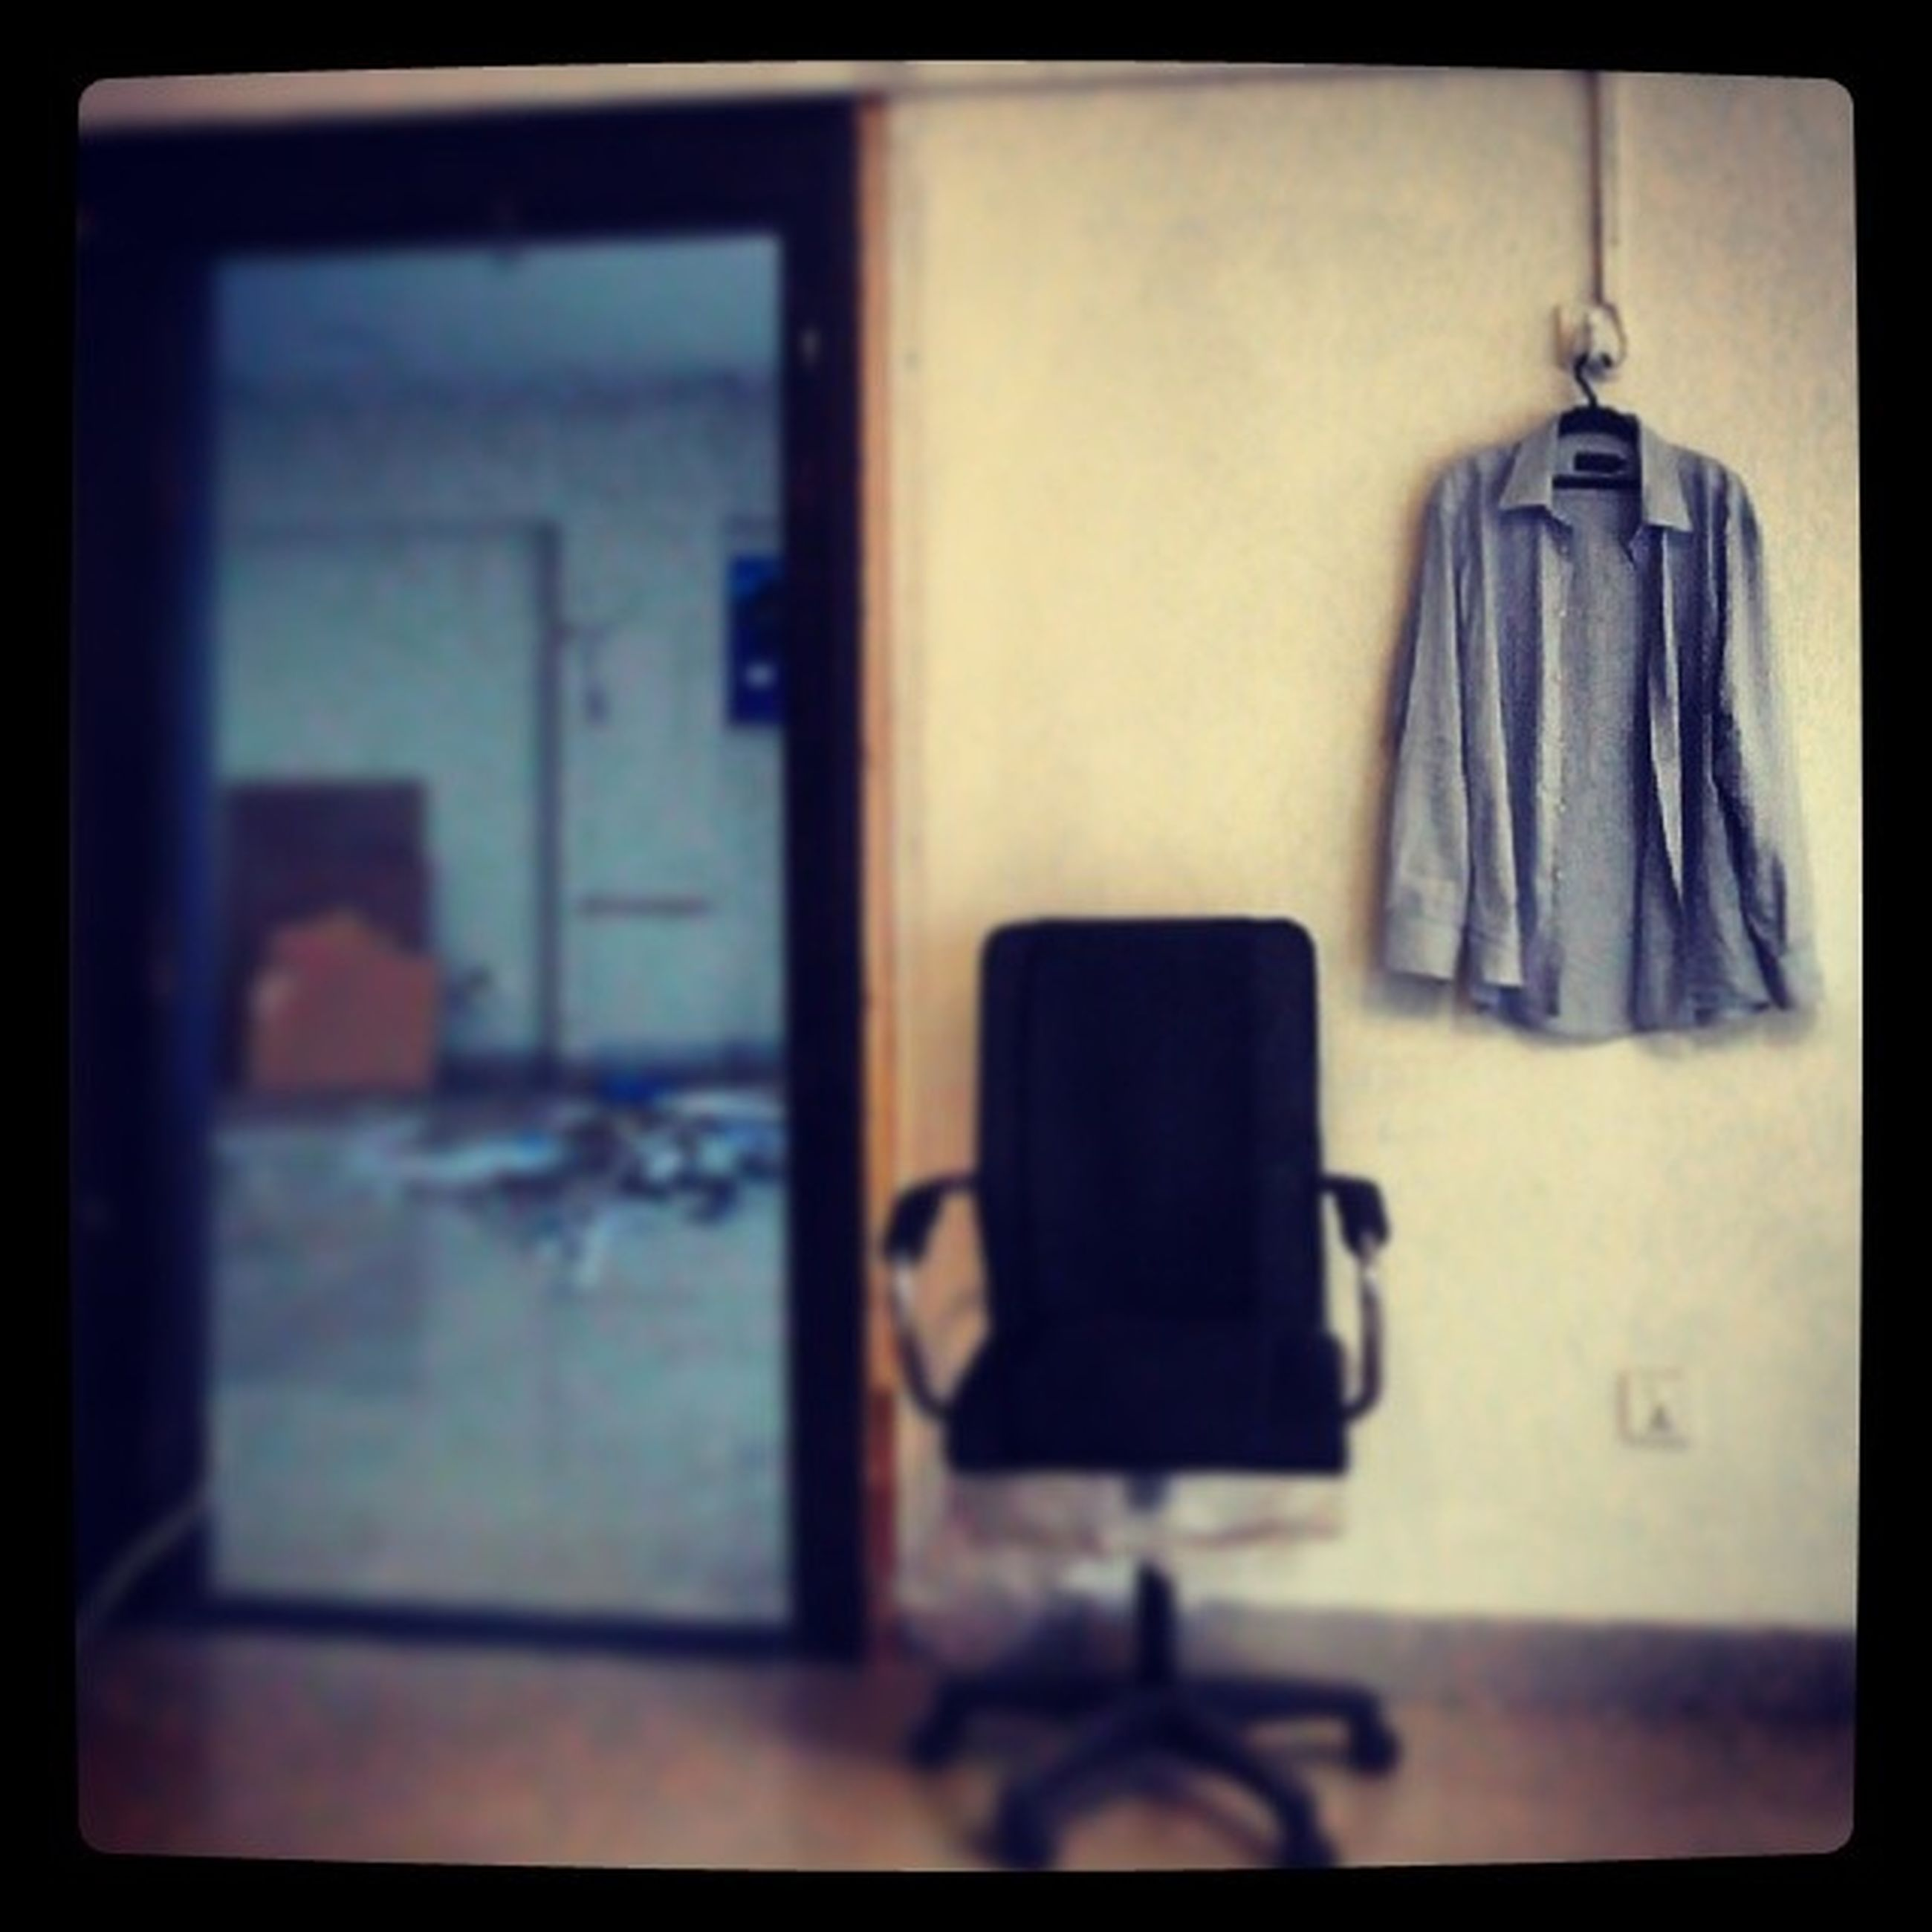 indoors, transfer print, table, glass - material, transparent, window, auto post production filter, close-up, still life, selective focus, home interior, empty, technology, focus on foreground, no people, reflection, glass, absence, day, chair